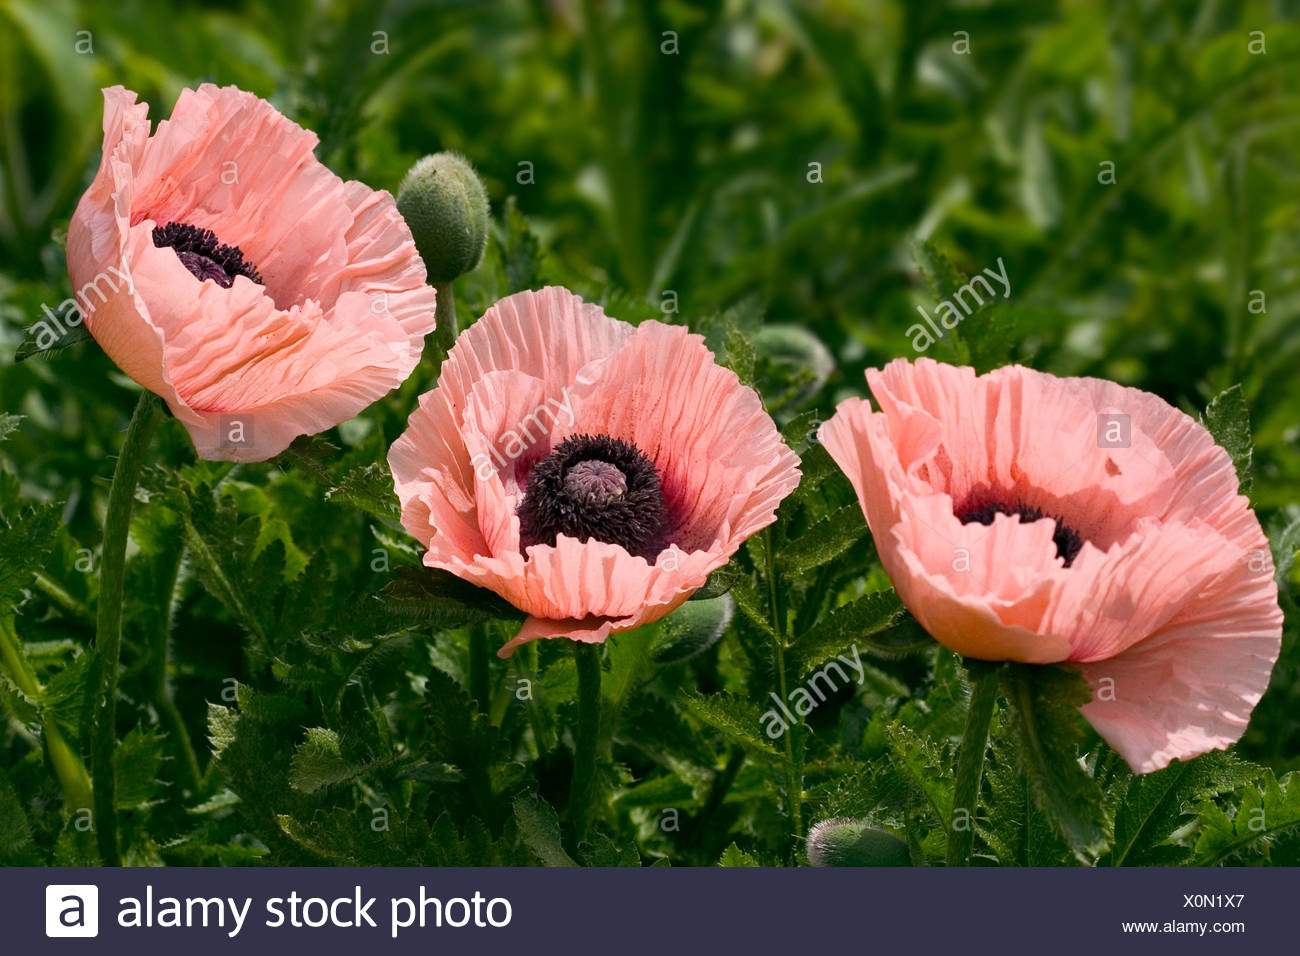 A natural shot of three pink poppies stock photo 275828399 alamy a natural shot of three pink poppies mightylinksfo